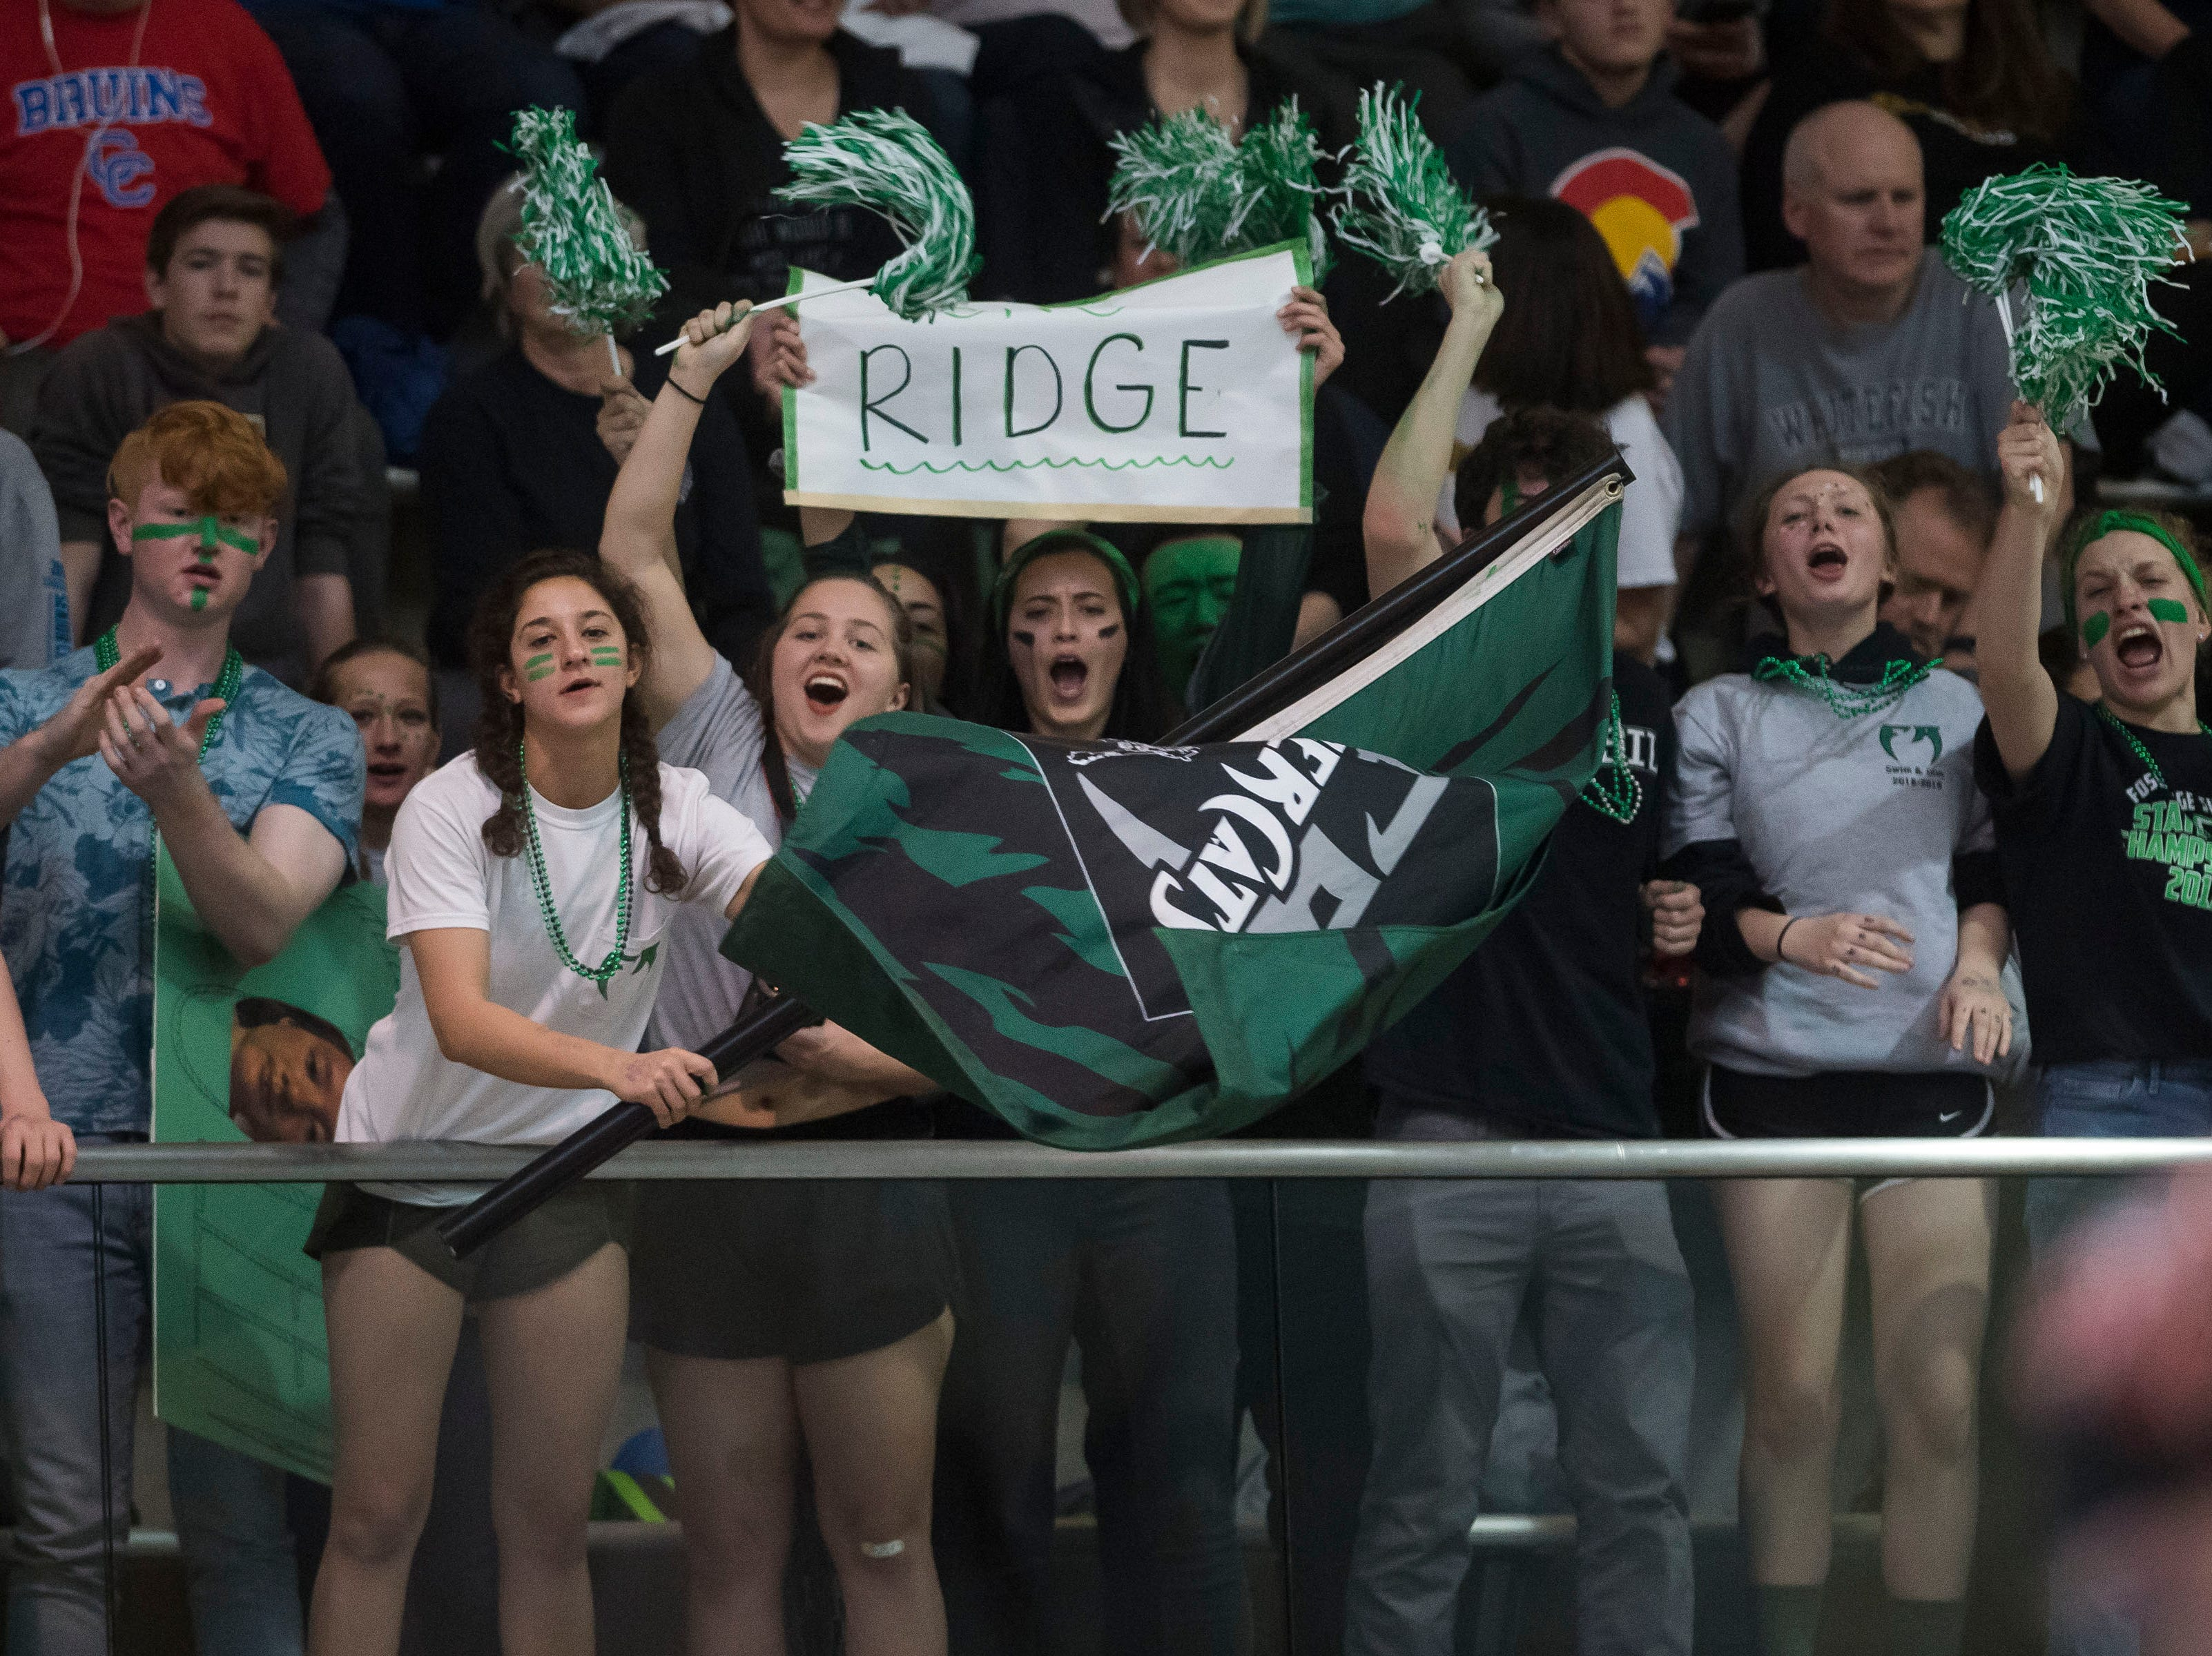 Fossil Ridge High School students cheer their team on during the Colorado Girl's 5A State Championship on Saturday, Feb. 9, 2019, at Veterans Memorial Aquatic Center in Thornton, Colo.